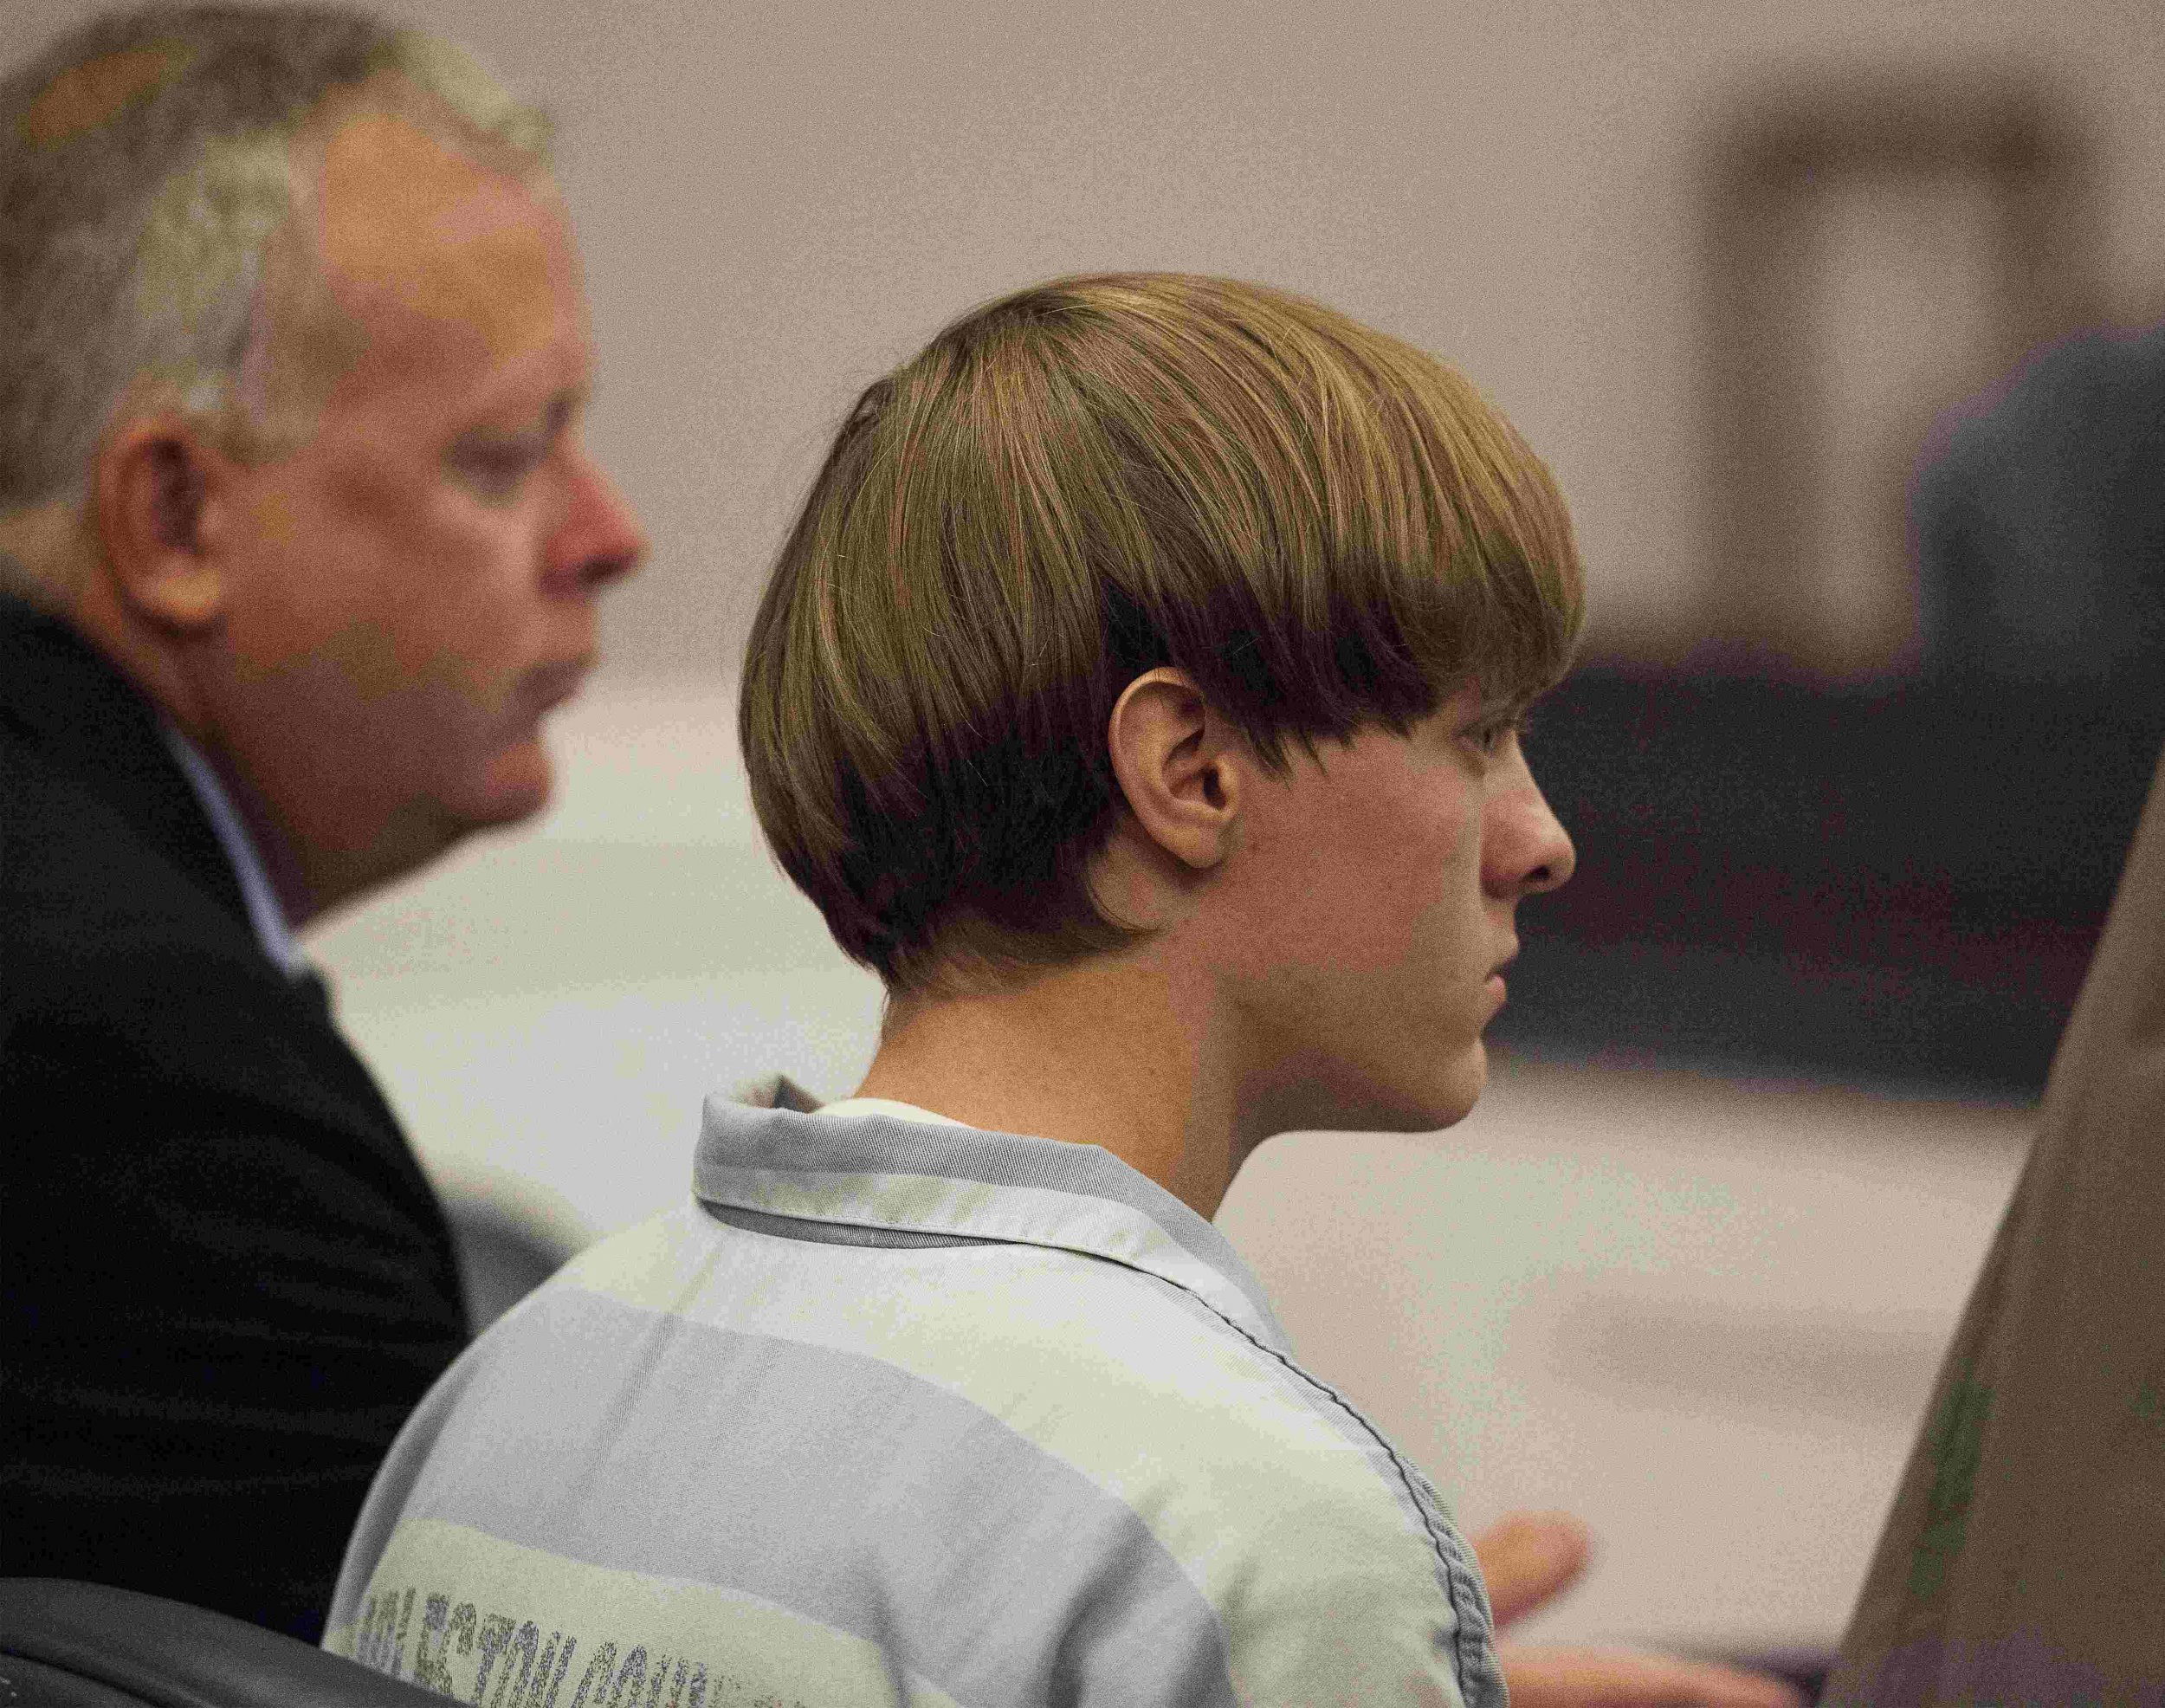 Charleston suspect dylann roof enters not guilty plea